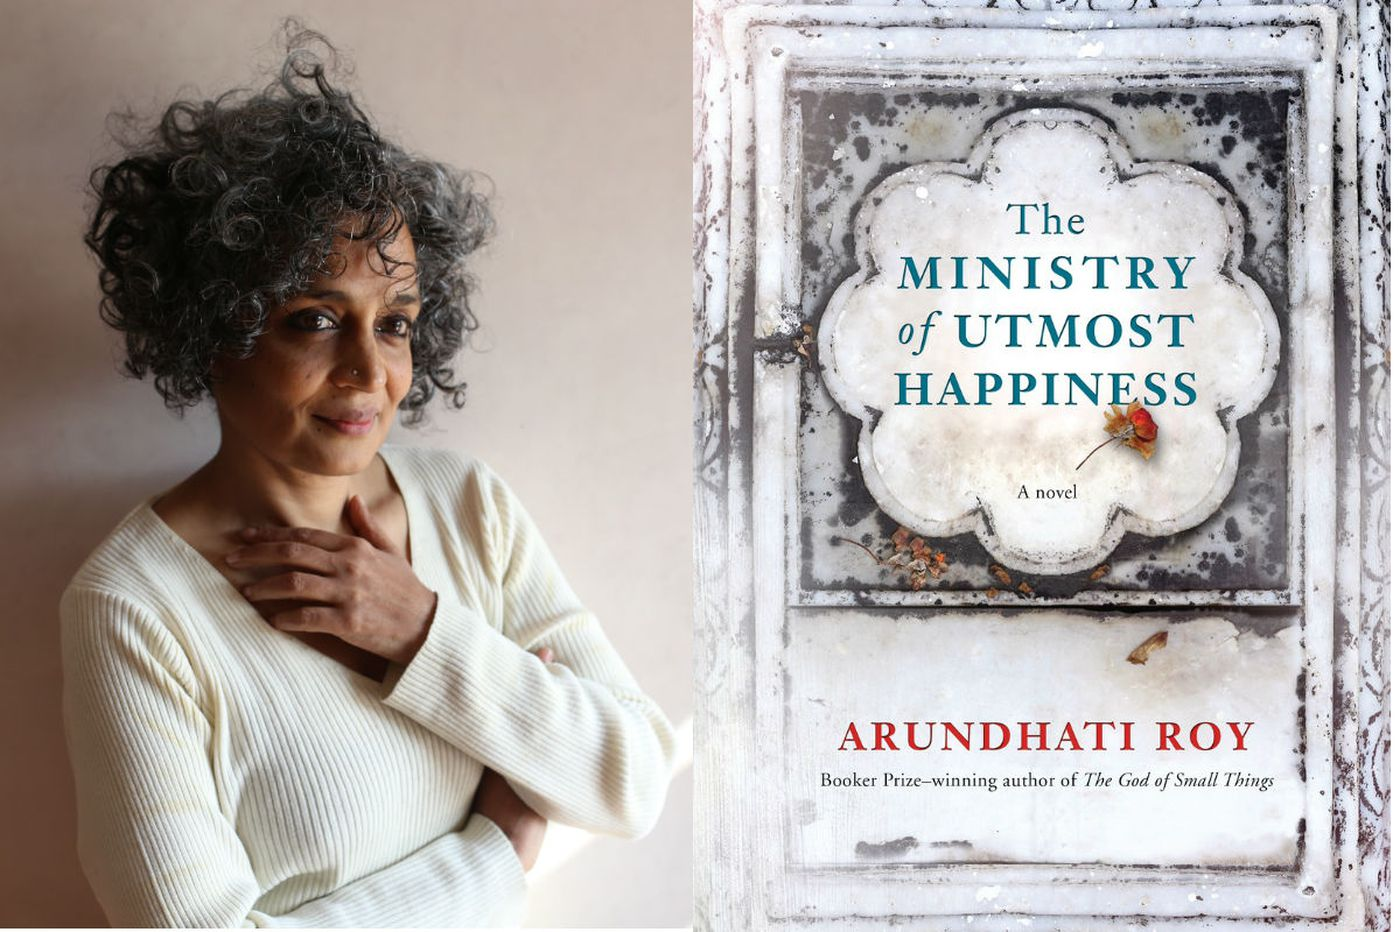 Arundhati Roy's long-awaited new novel: Overstuffed, disappointing